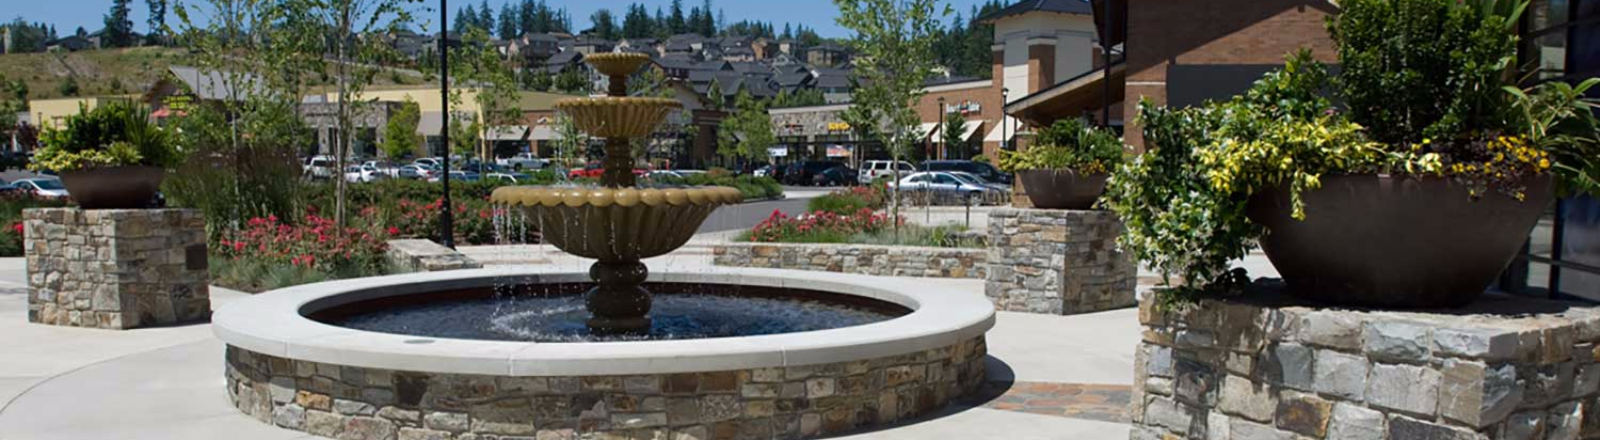 Three tier water  fountain cascading into a circular pool on the open plaza among the businesses at Happy Valley Town Center.